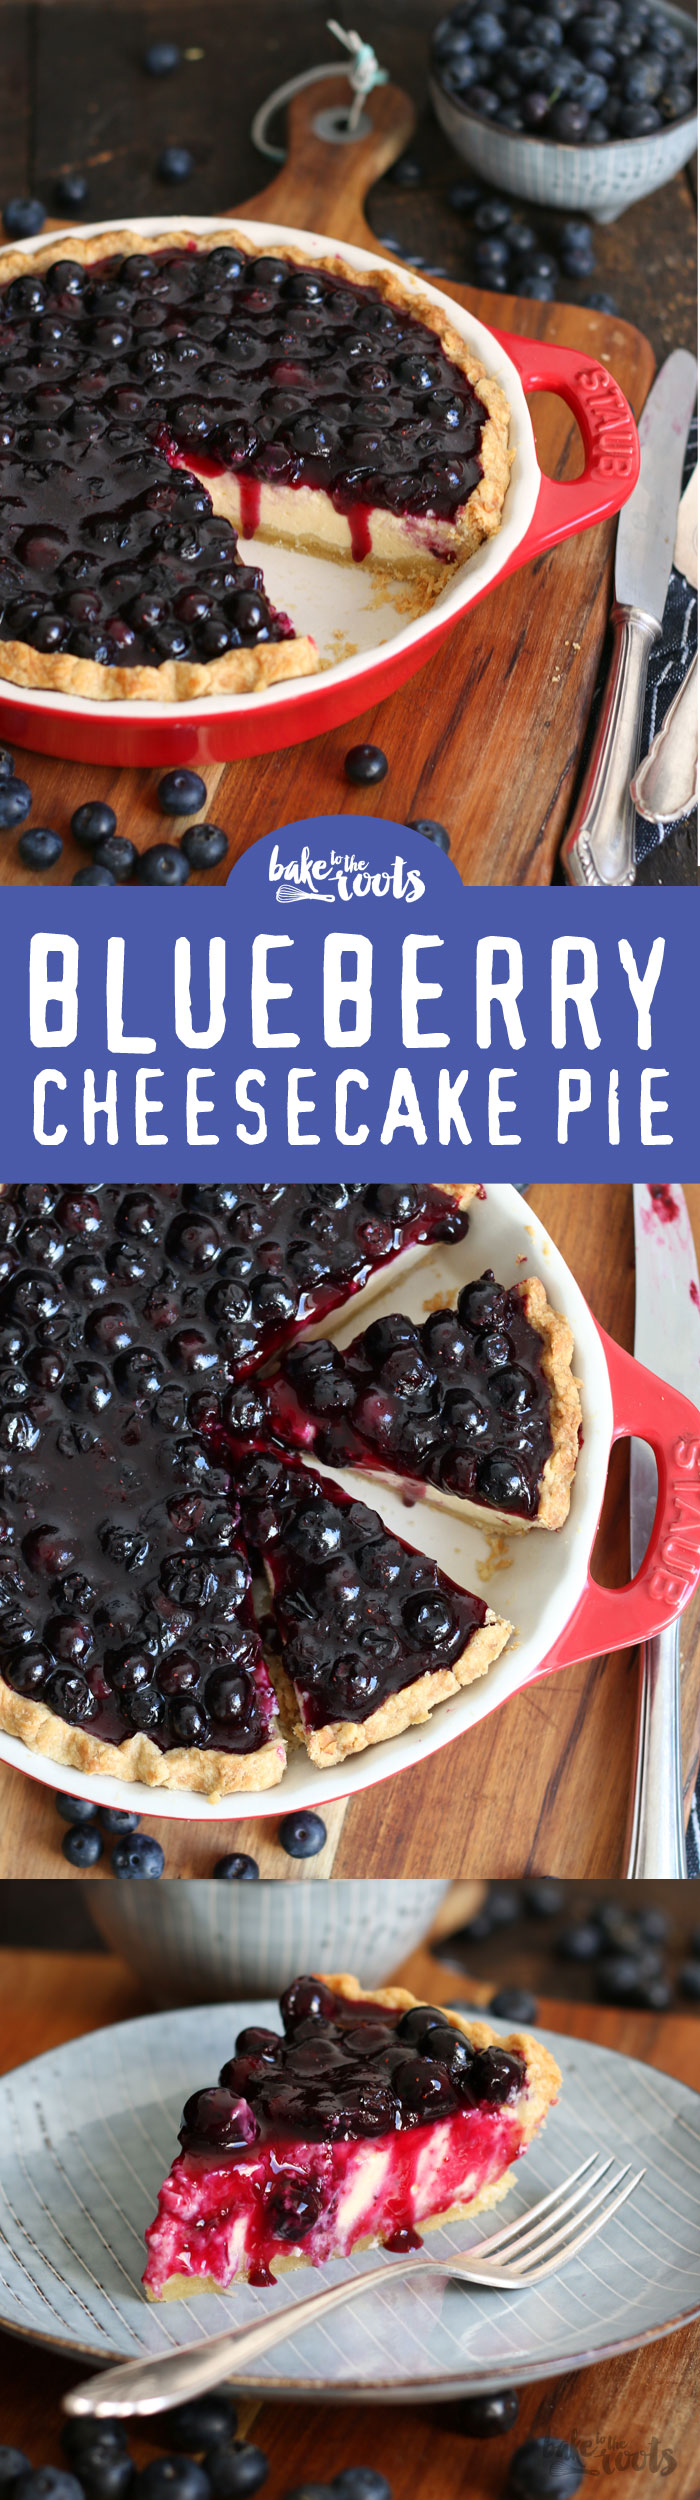 Delicious and creamy Blueberry Cheesecake Pie | Bake to the roots